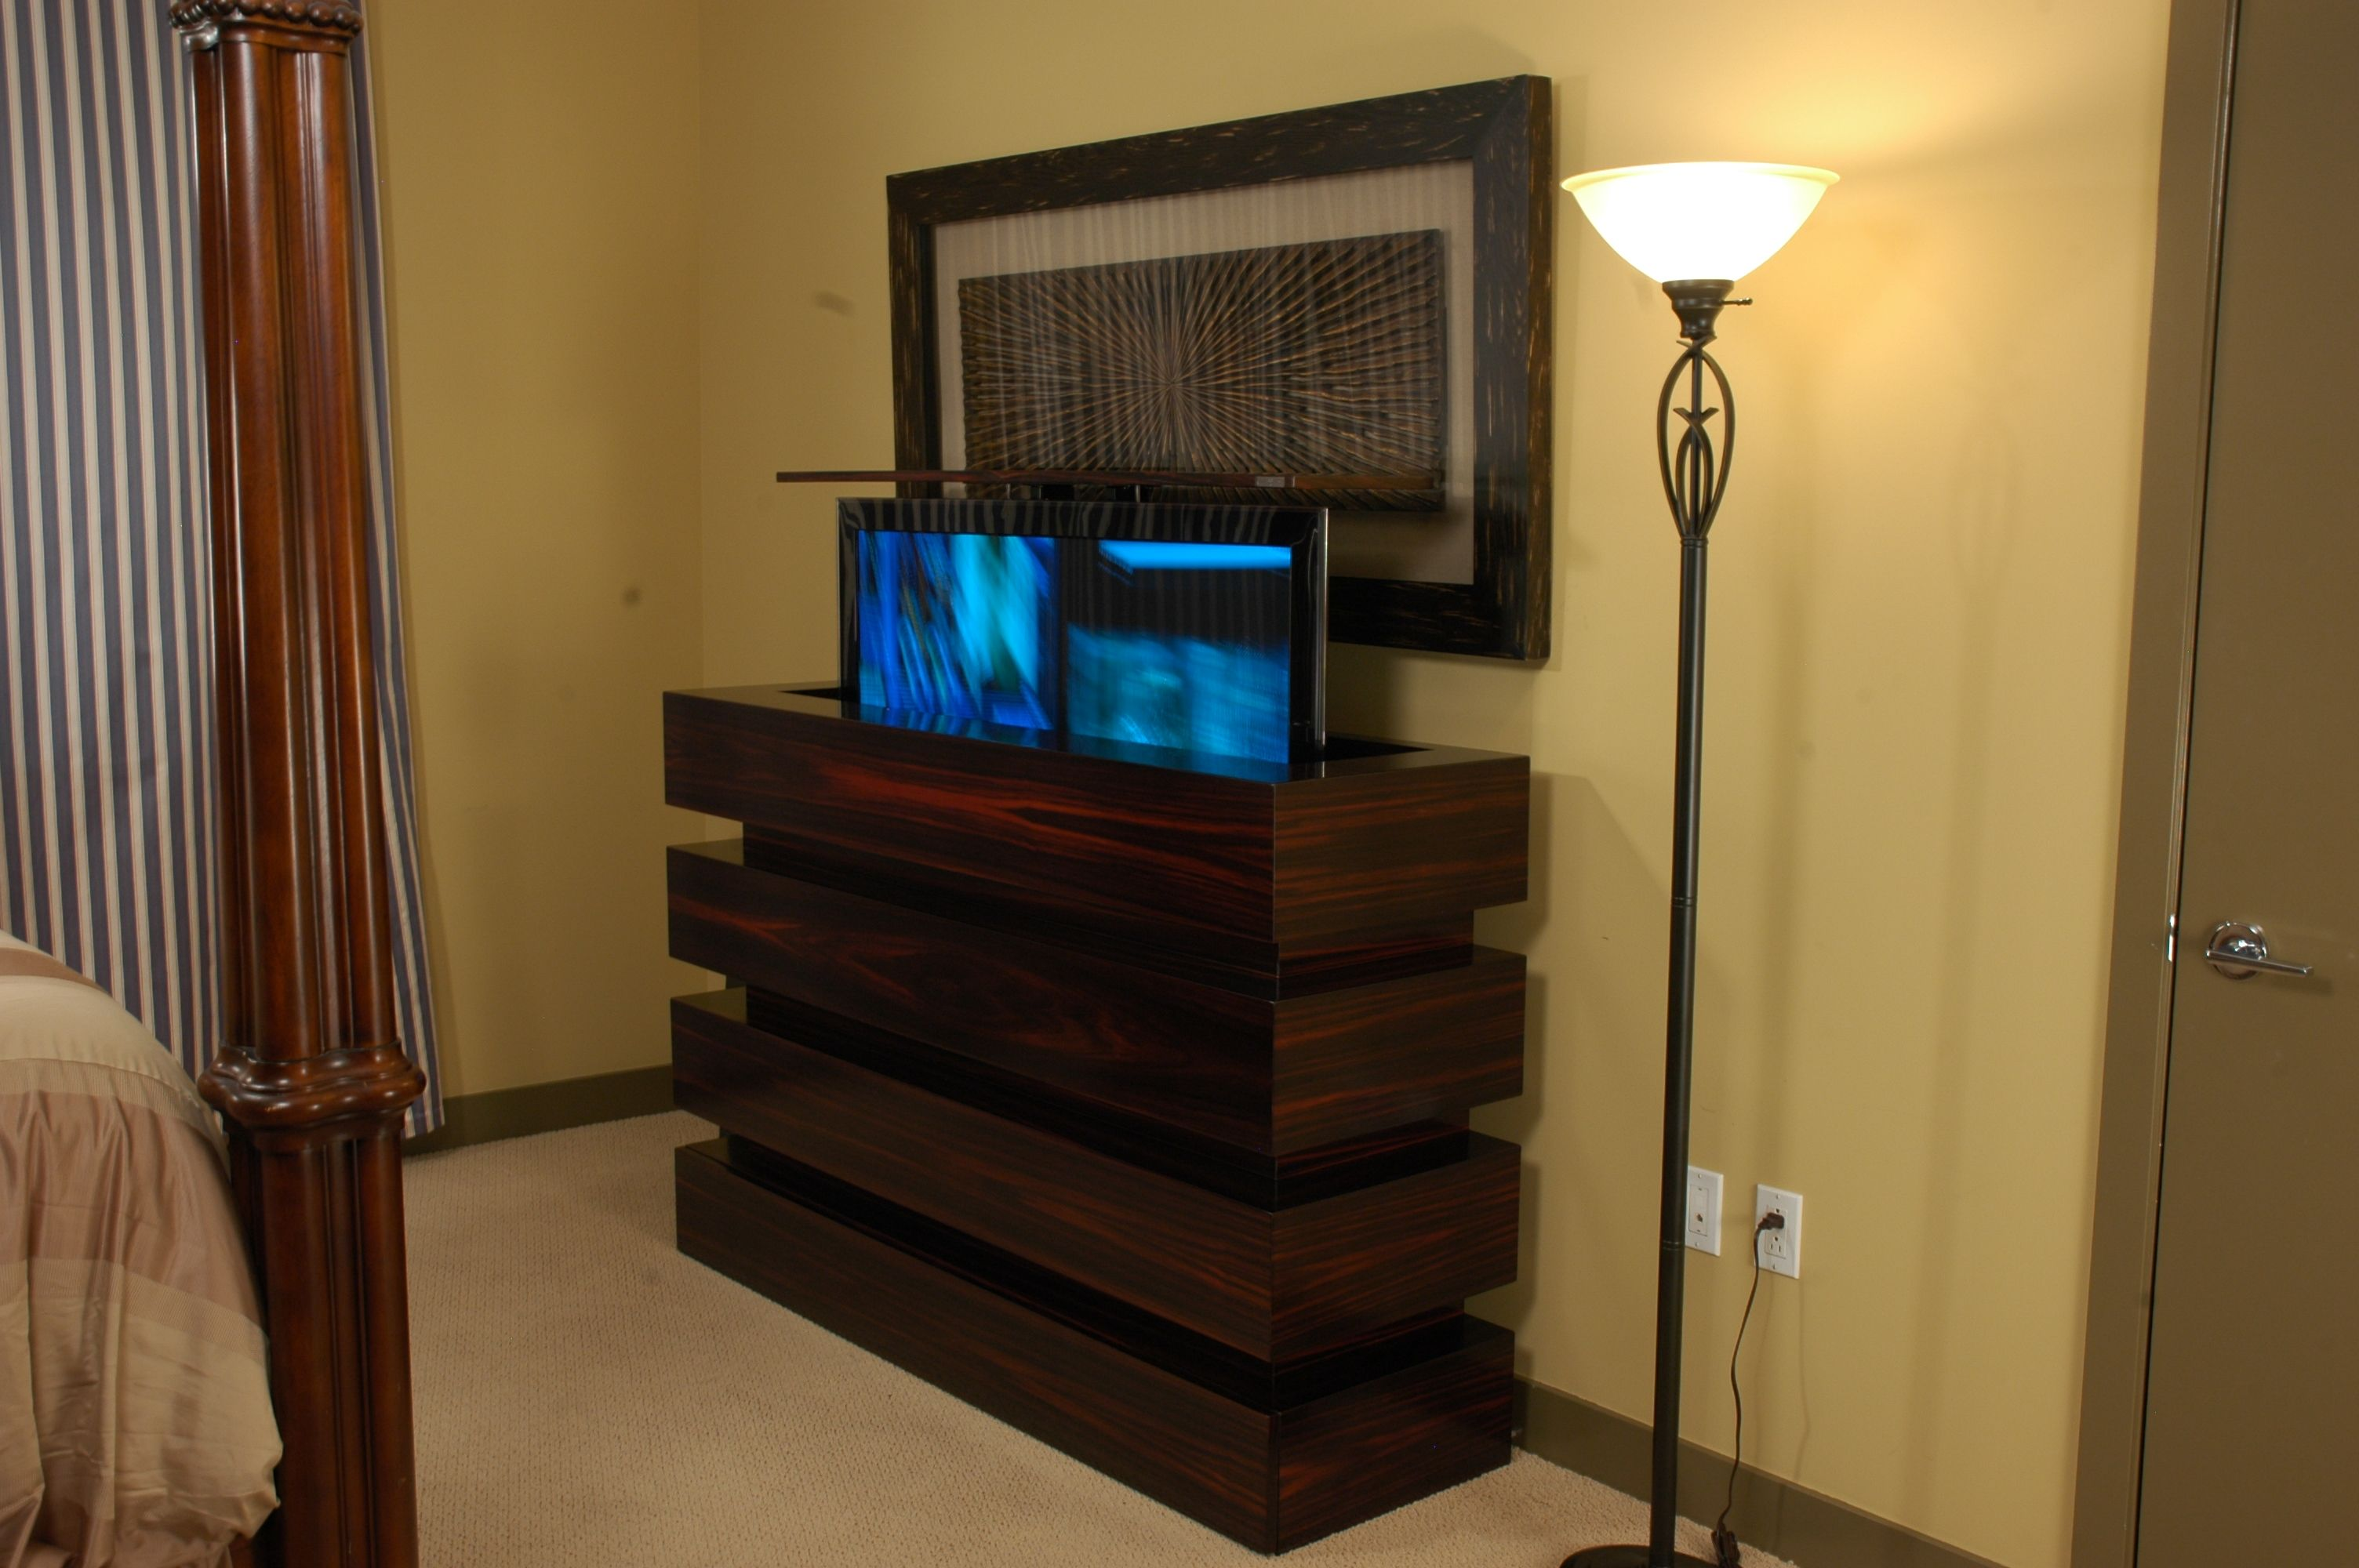 here is a tv lift cabinet showing tv half way up against a wall in front